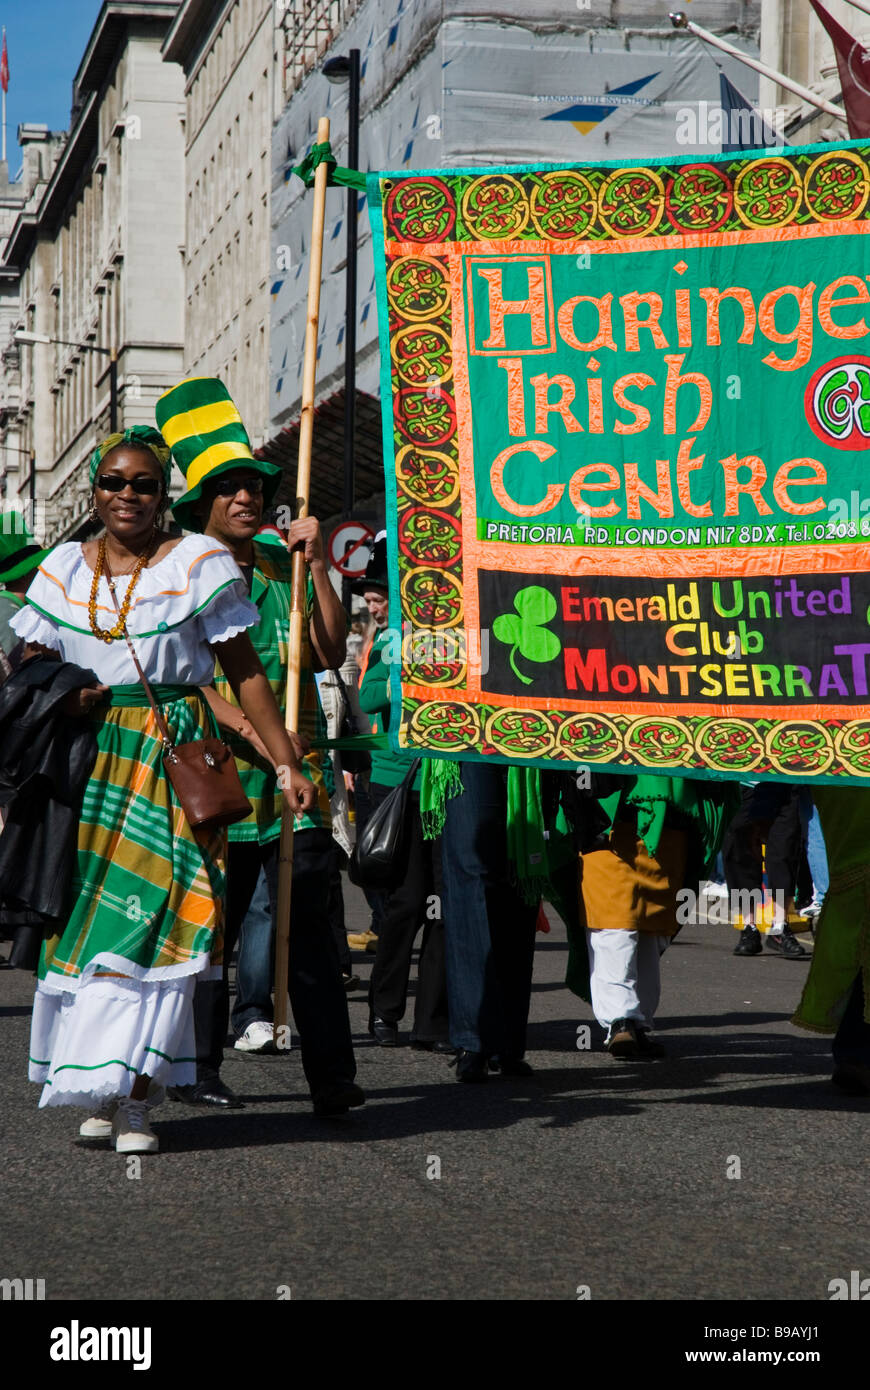 People with Haringey Irish Centre flag at St. Patrick's Day Parade in London England UK, 15th of March 2009 - Stock Image